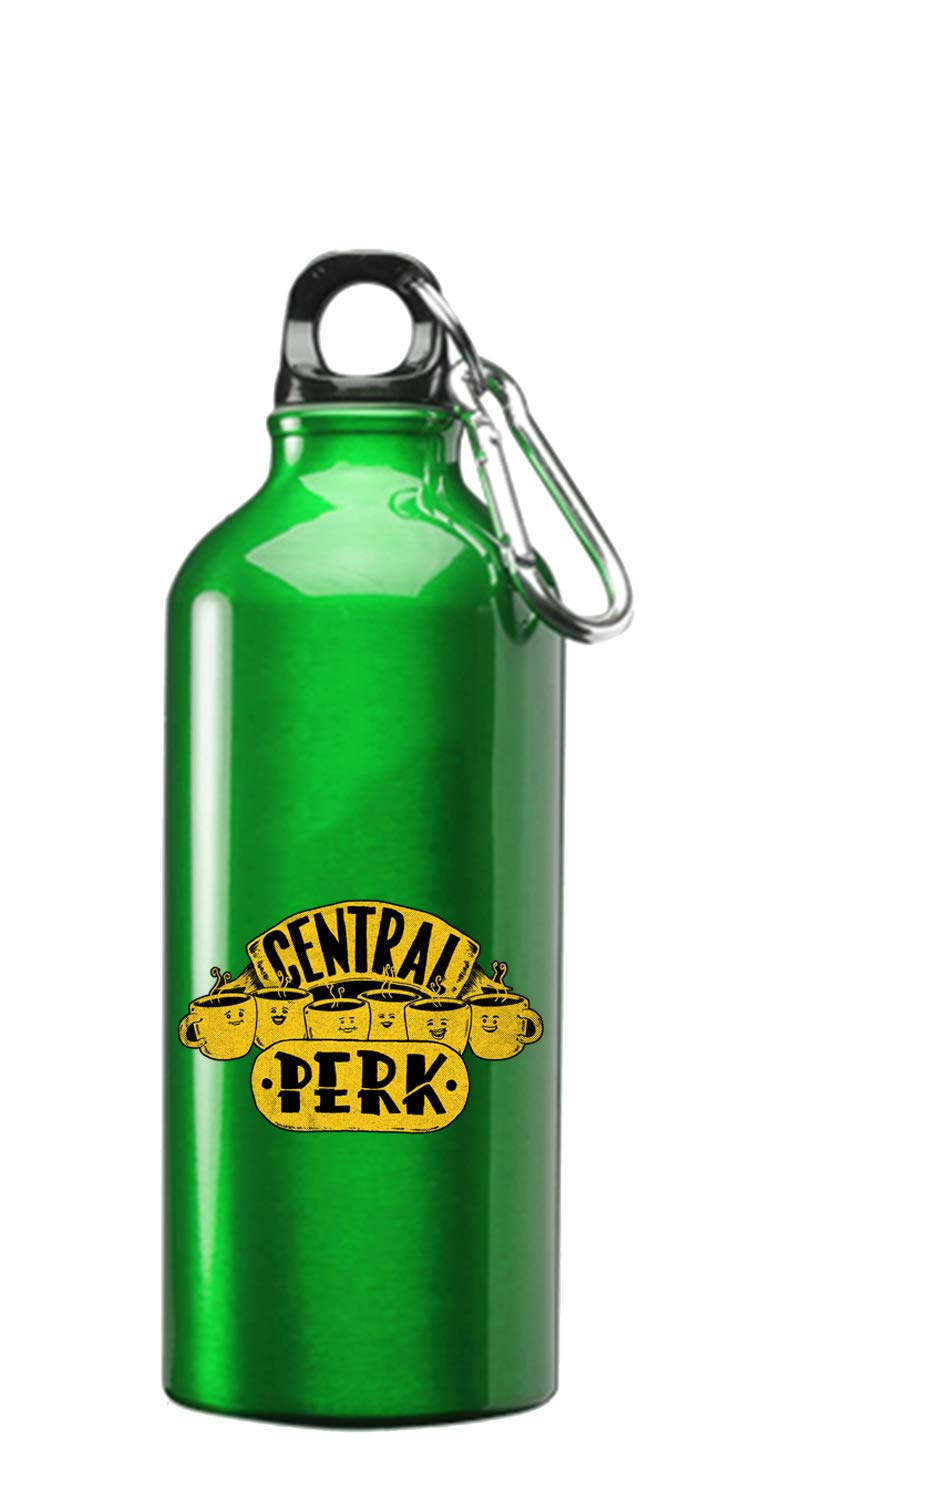 Parody Design 3D Color Printed 17 oz Stainless Steel Water Bottle Green Hat Shark Central Perk